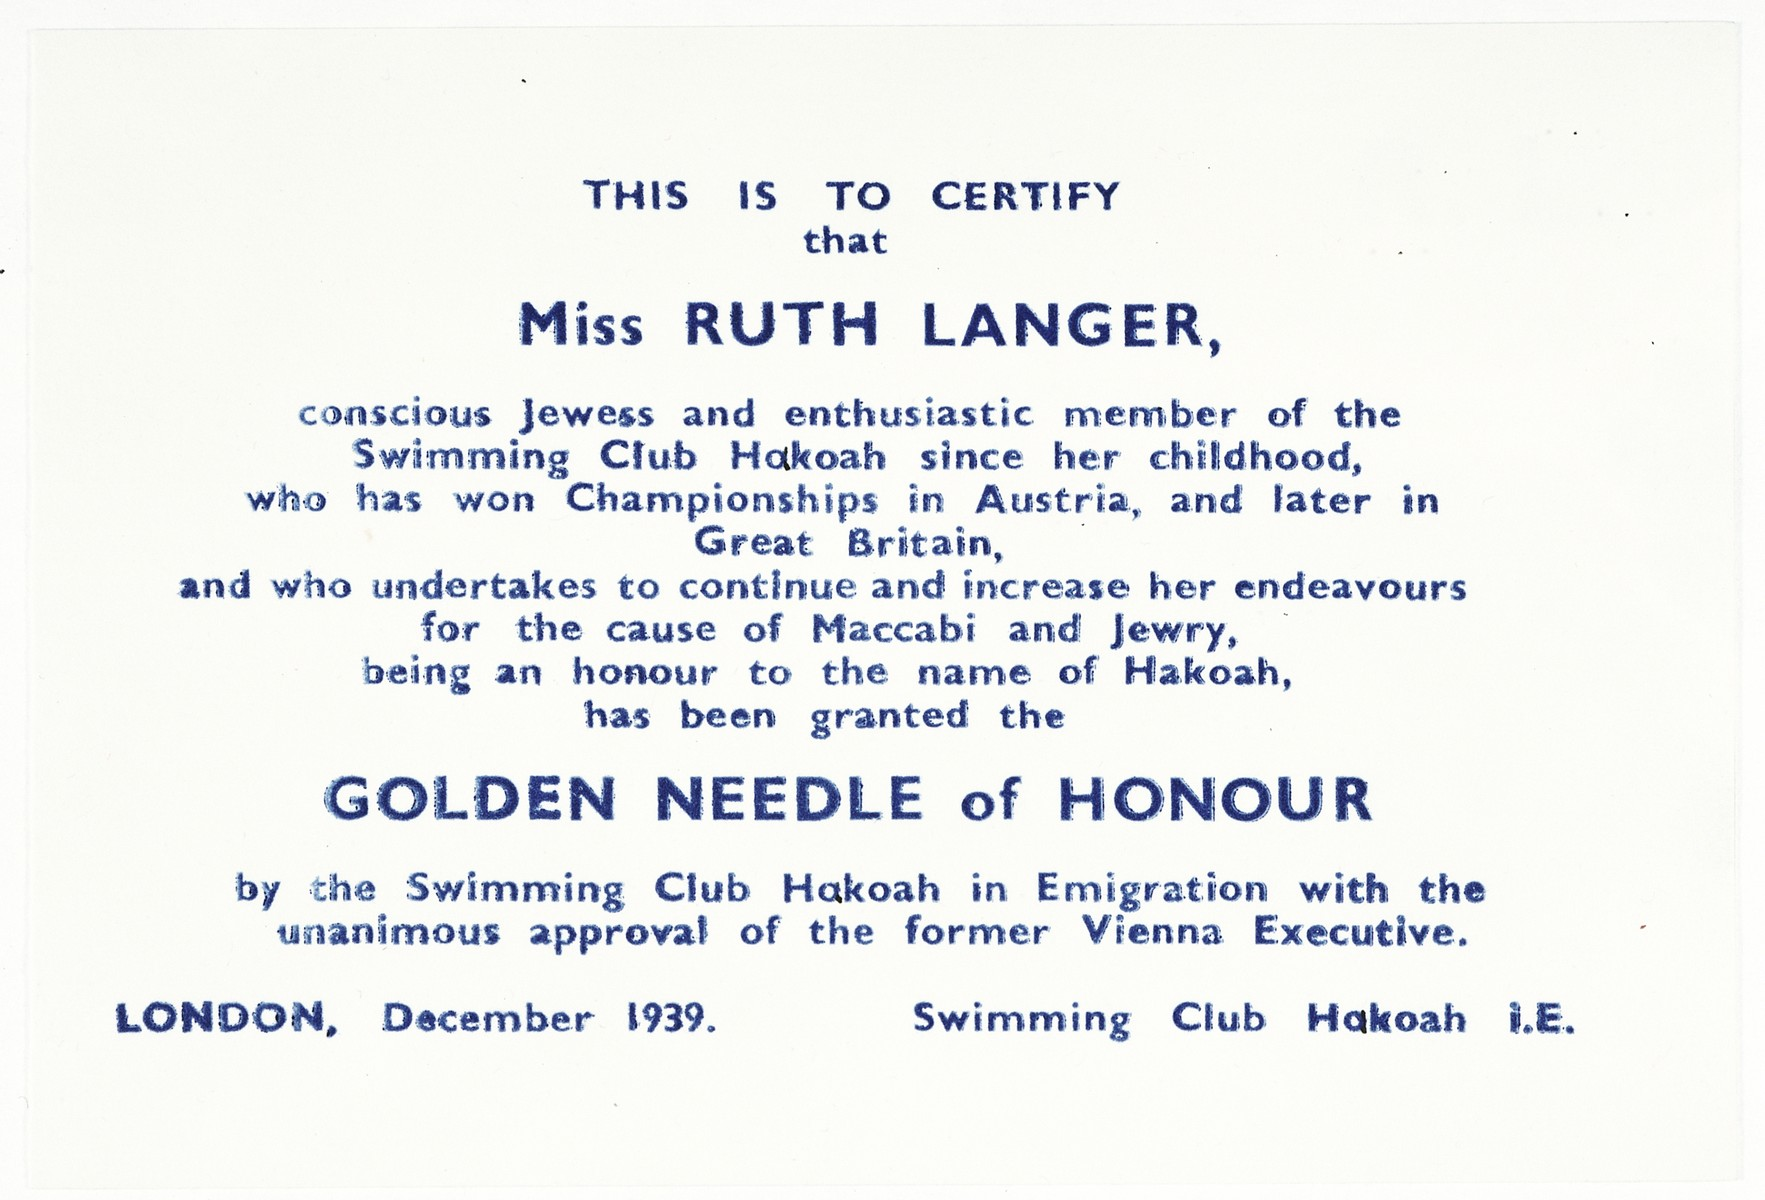 Certificate of award given to Ruth Langer for her contributions to the Hakoach Jewish swim club.